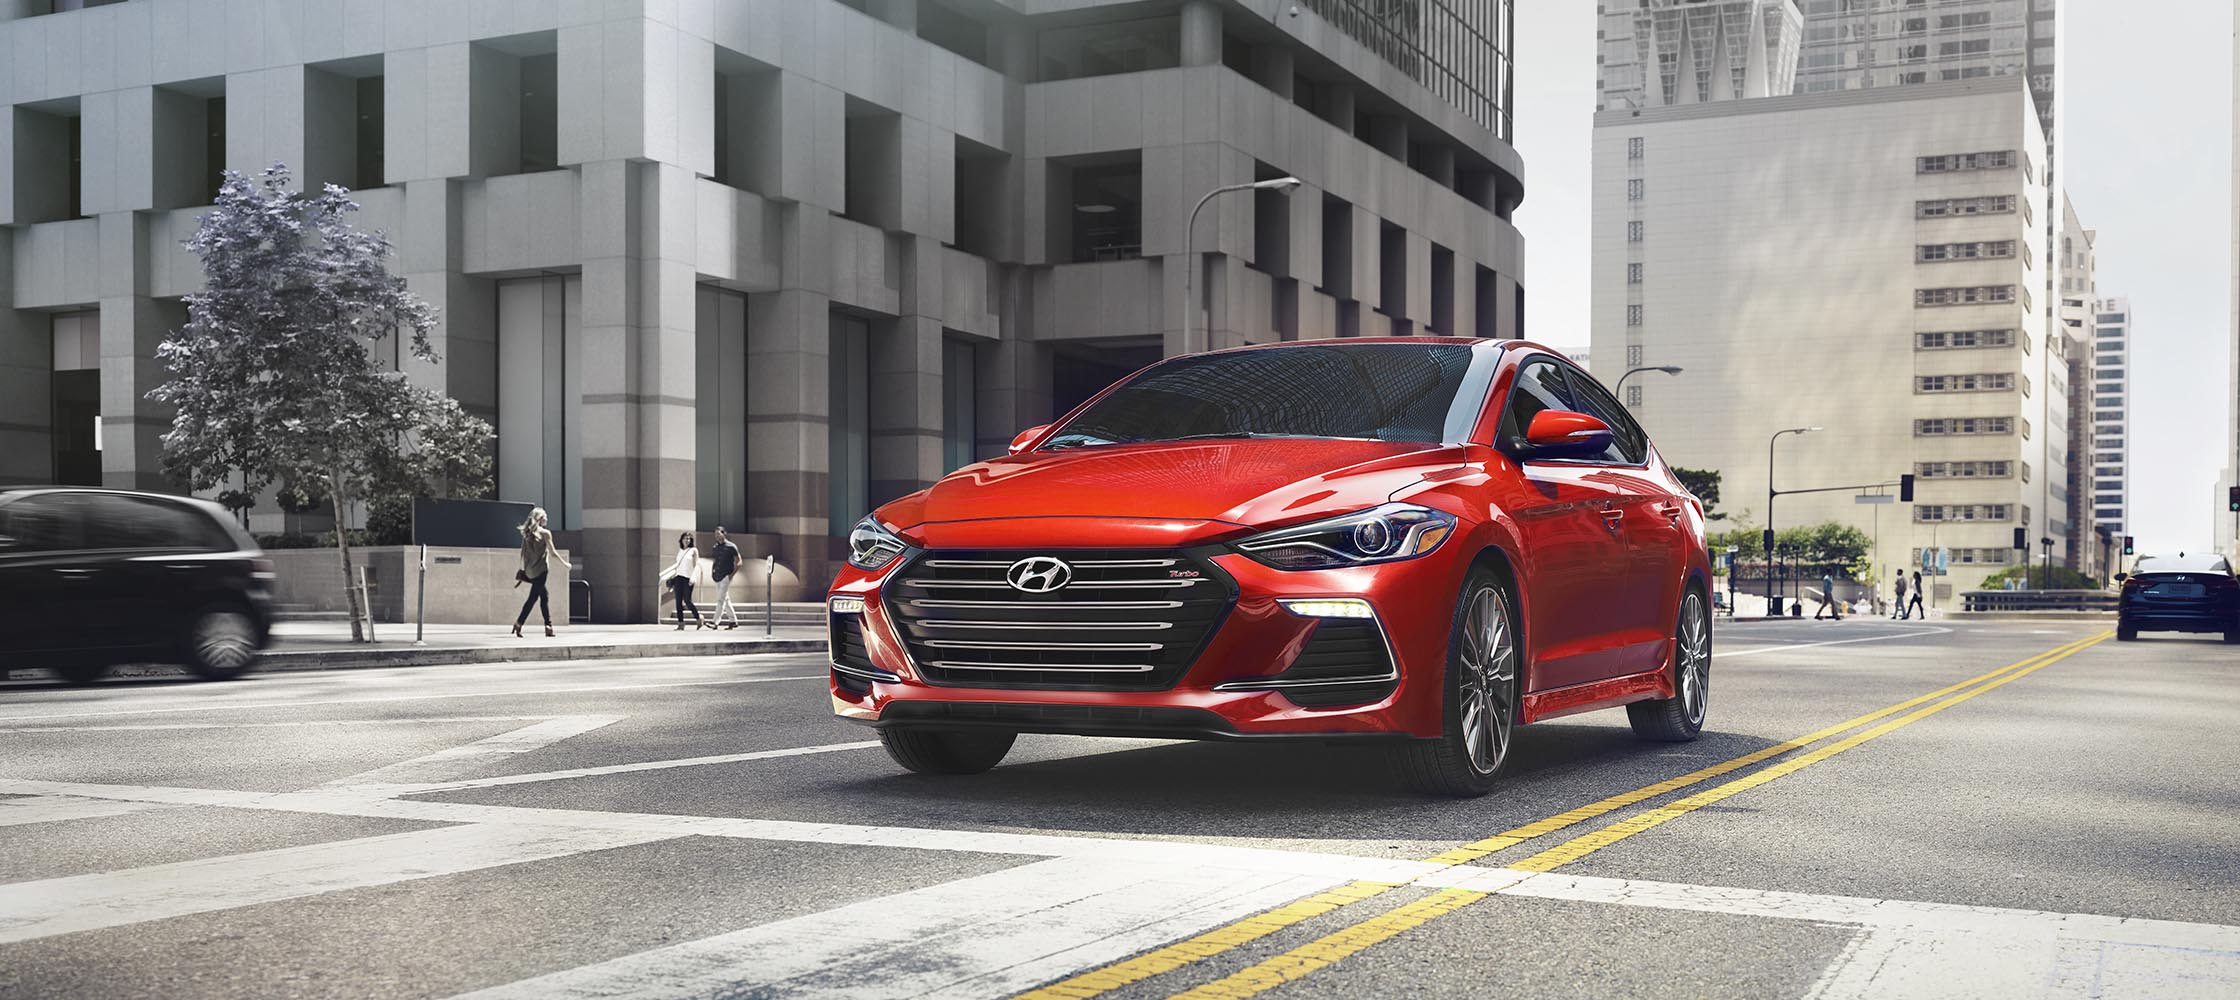 Exterior front image of Red Hyundai Elantra Sport 2017 driving on city streets